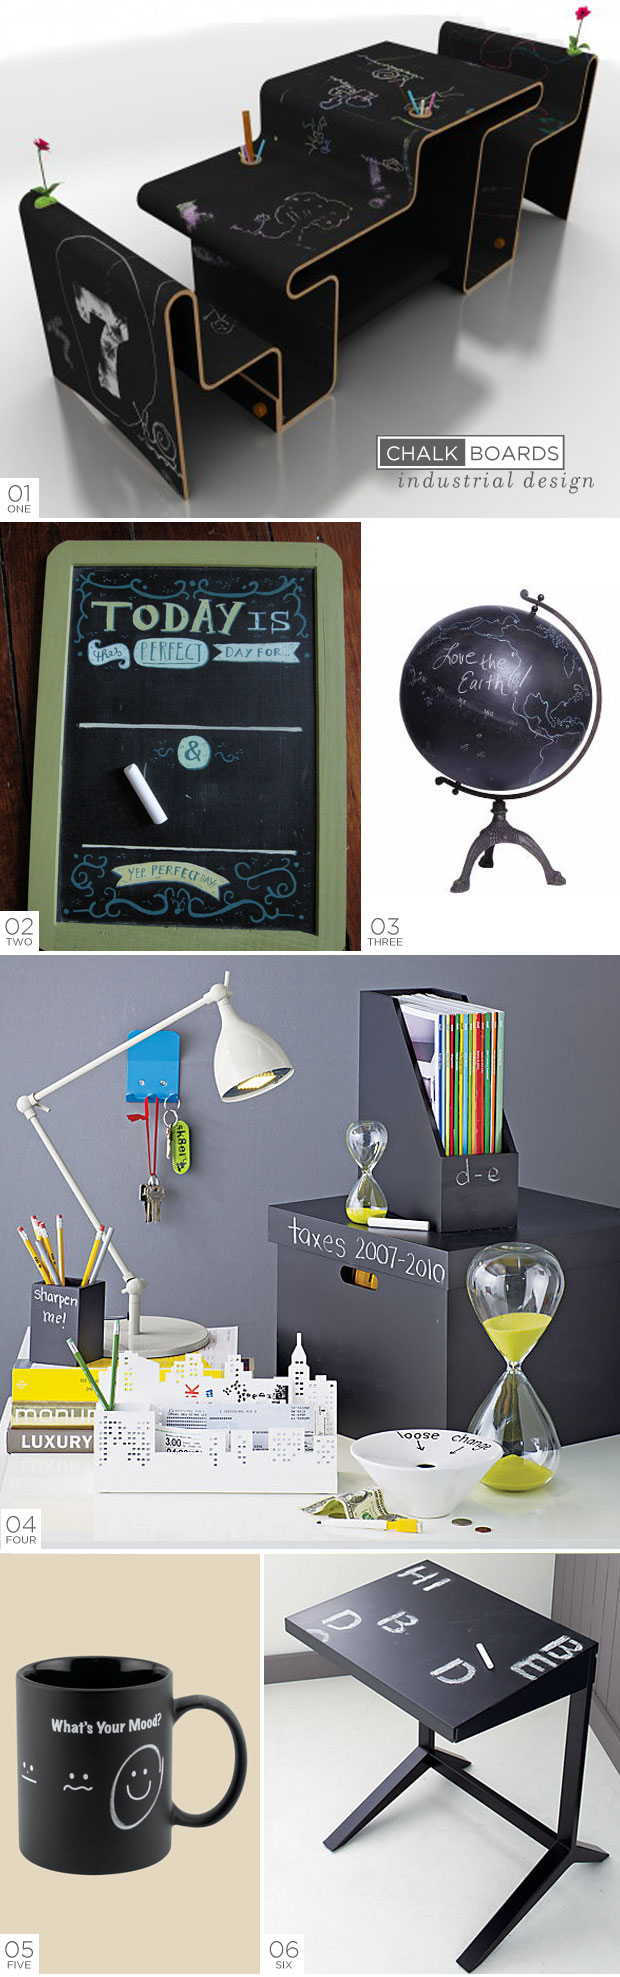 Chalkboards - Industrial Design